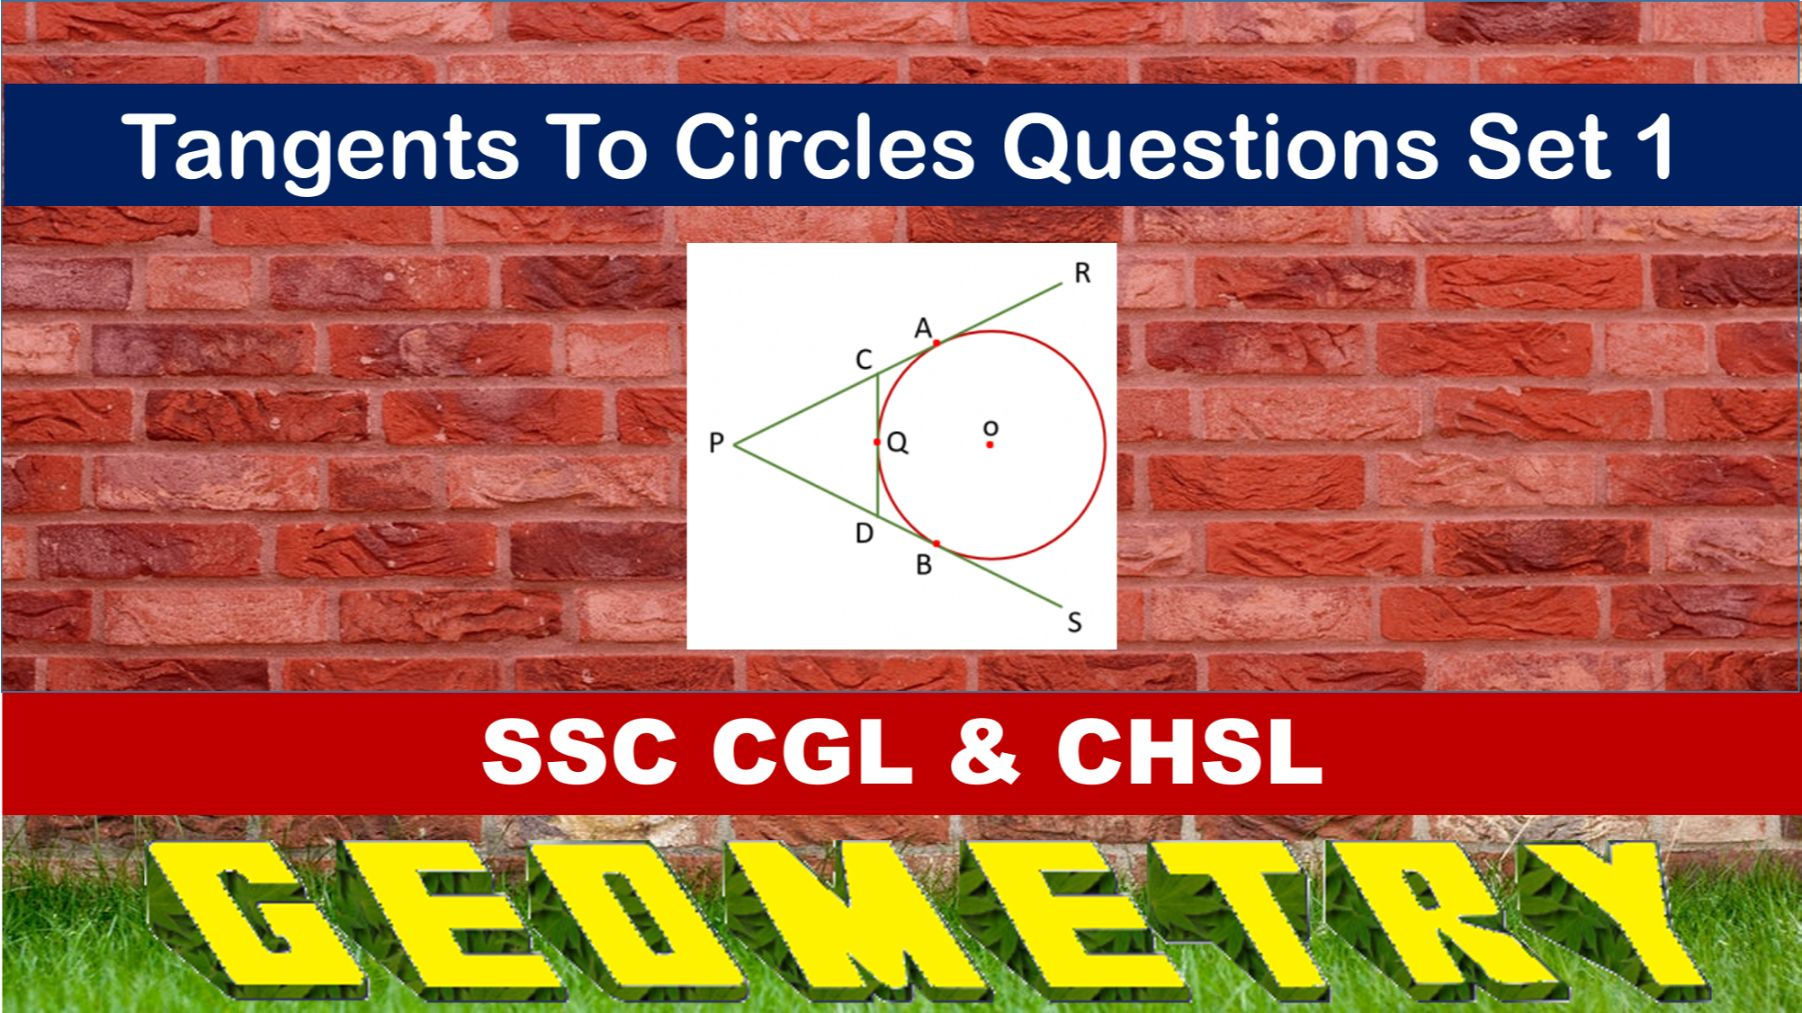 SSC CGL Geometry Tangent To Circles Set 1